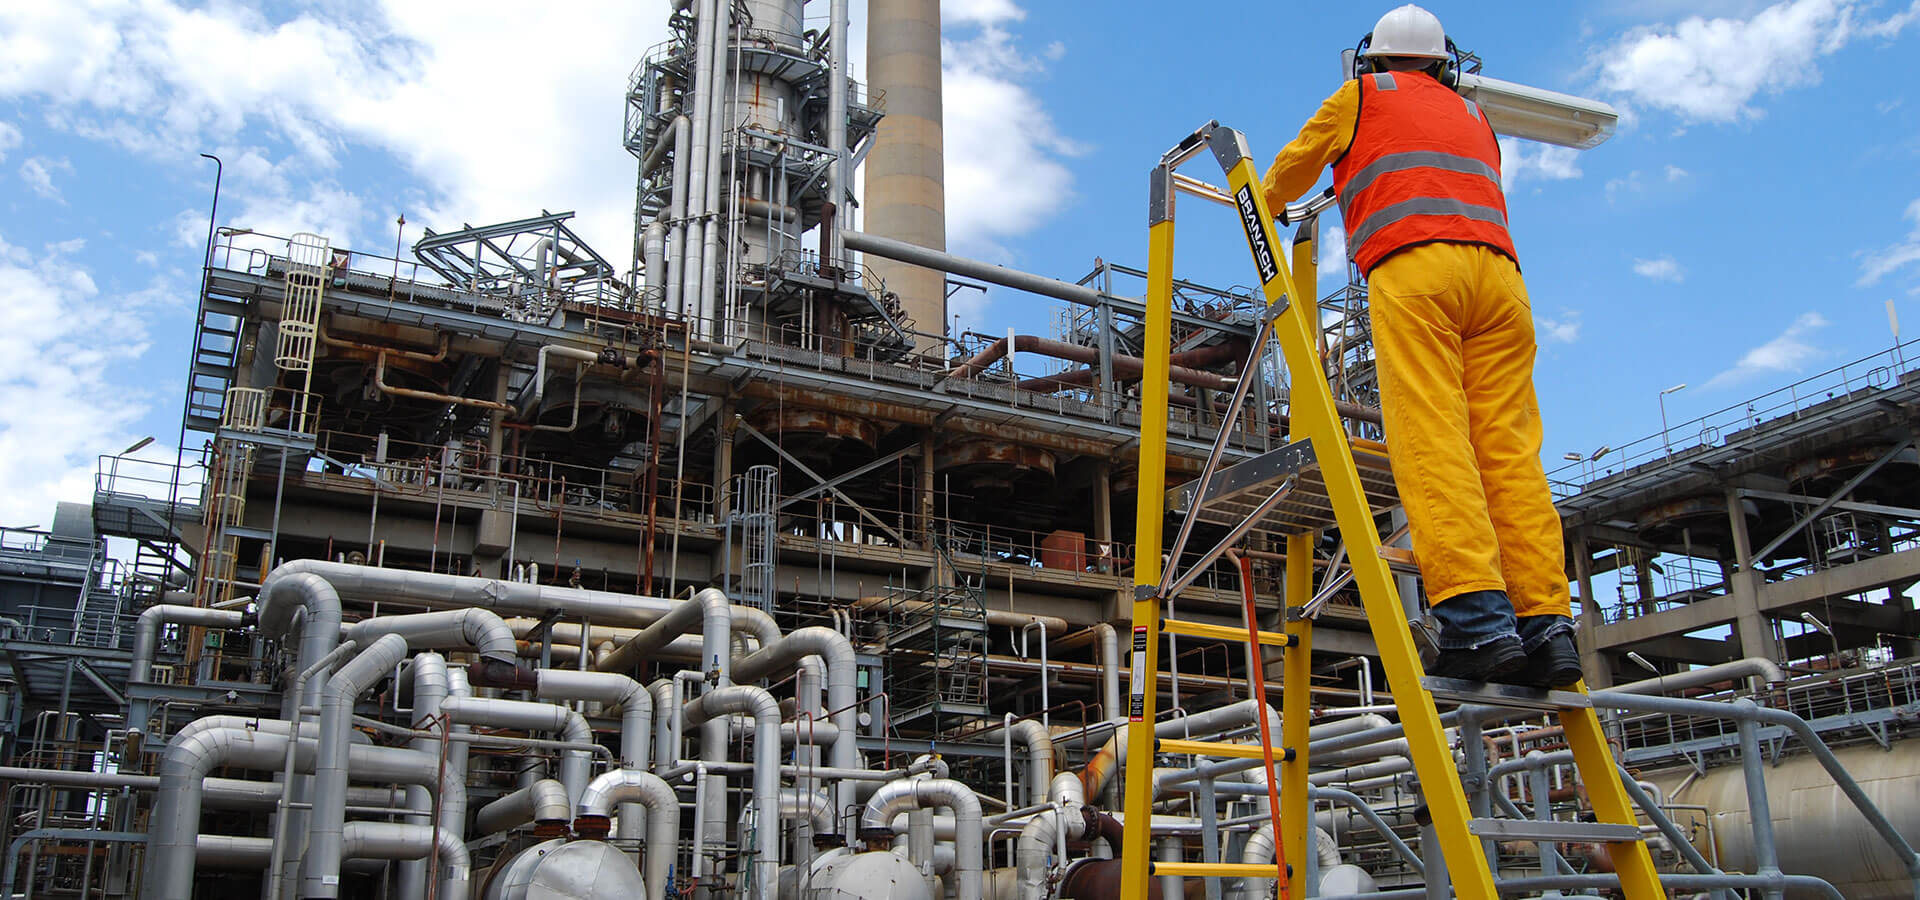 The Branach fibreglass CorrosionMaster 550mm Step Platform Ladder being used in an oil refinery.